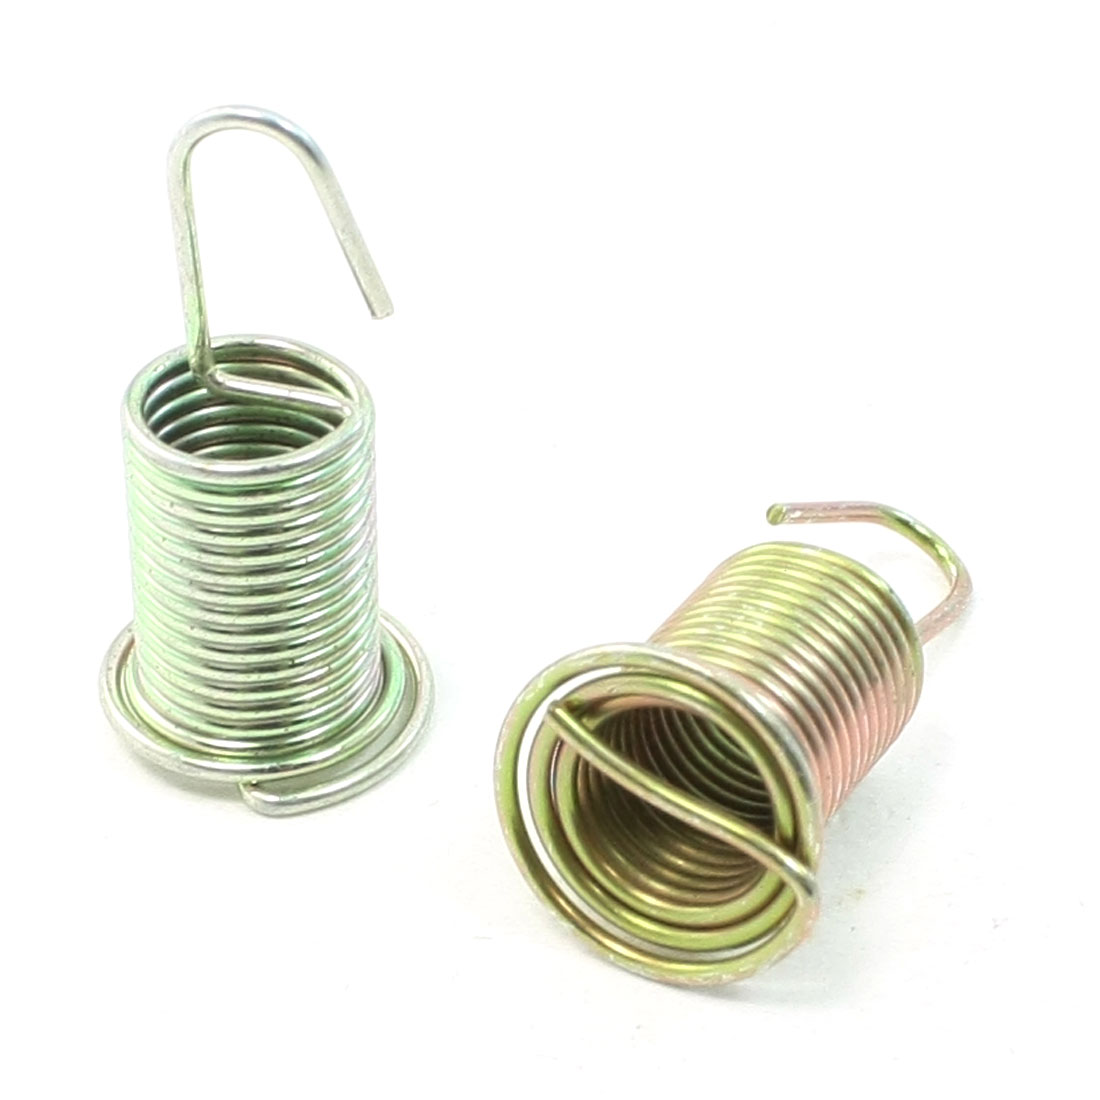 2 x Tension Spring Replacement Part 1.5 x 3cm for Washing Machine